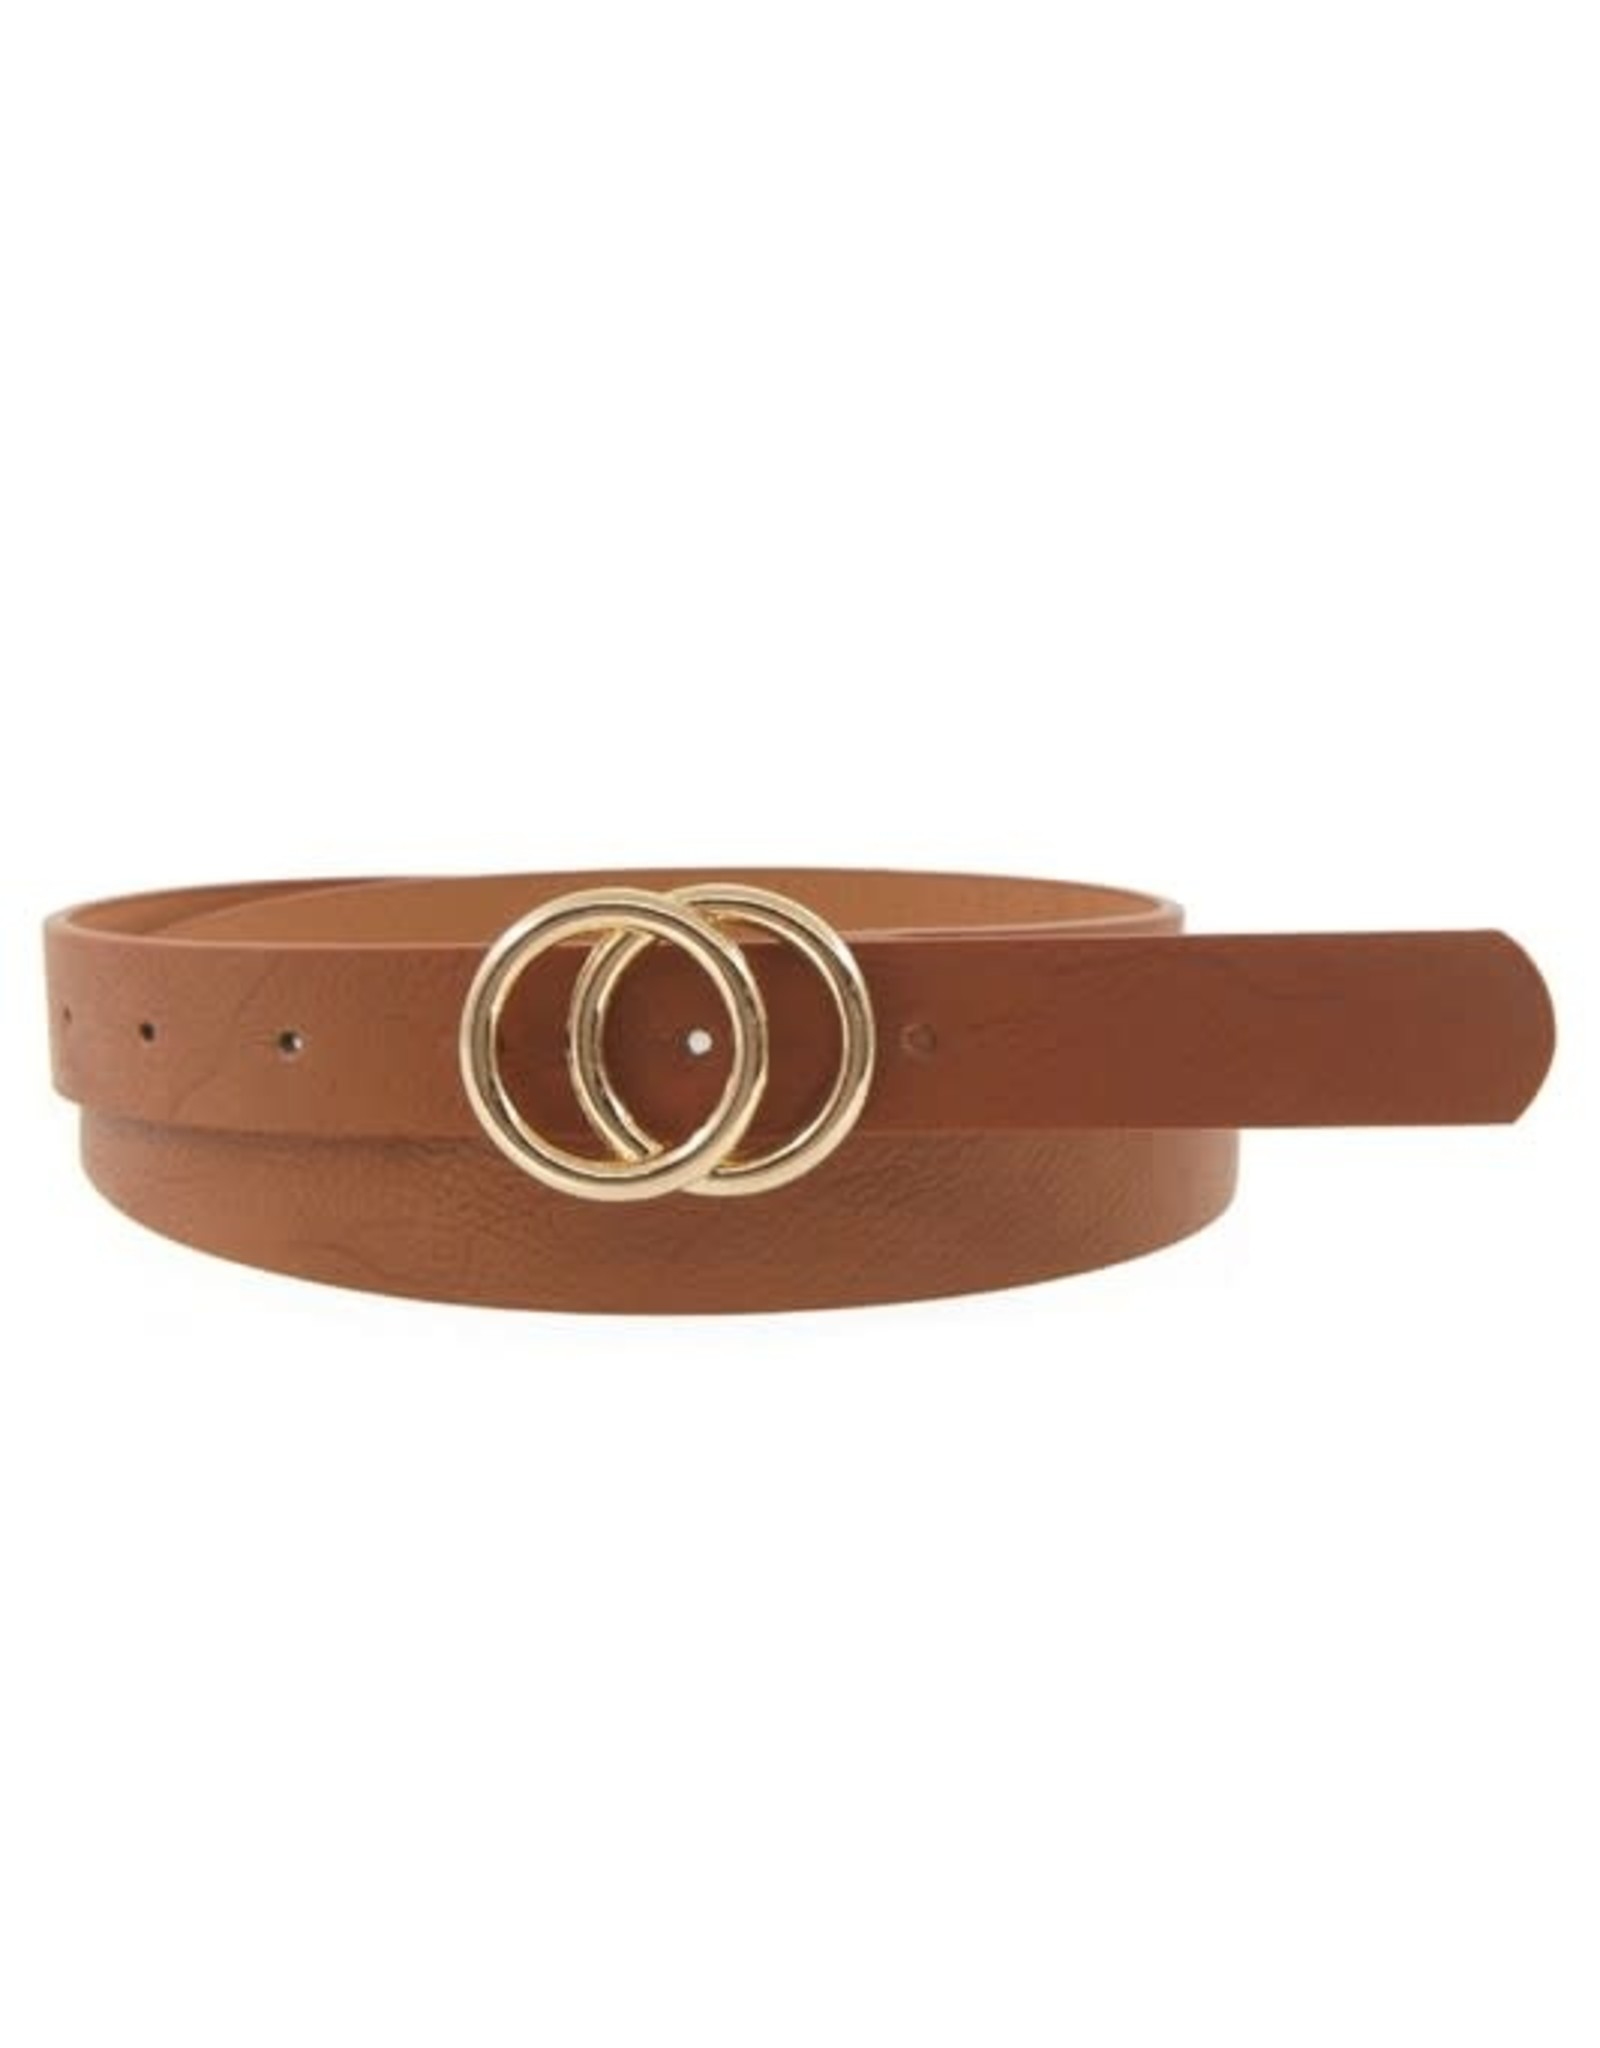 Coveted Clothing Double Ring Belt-Tan